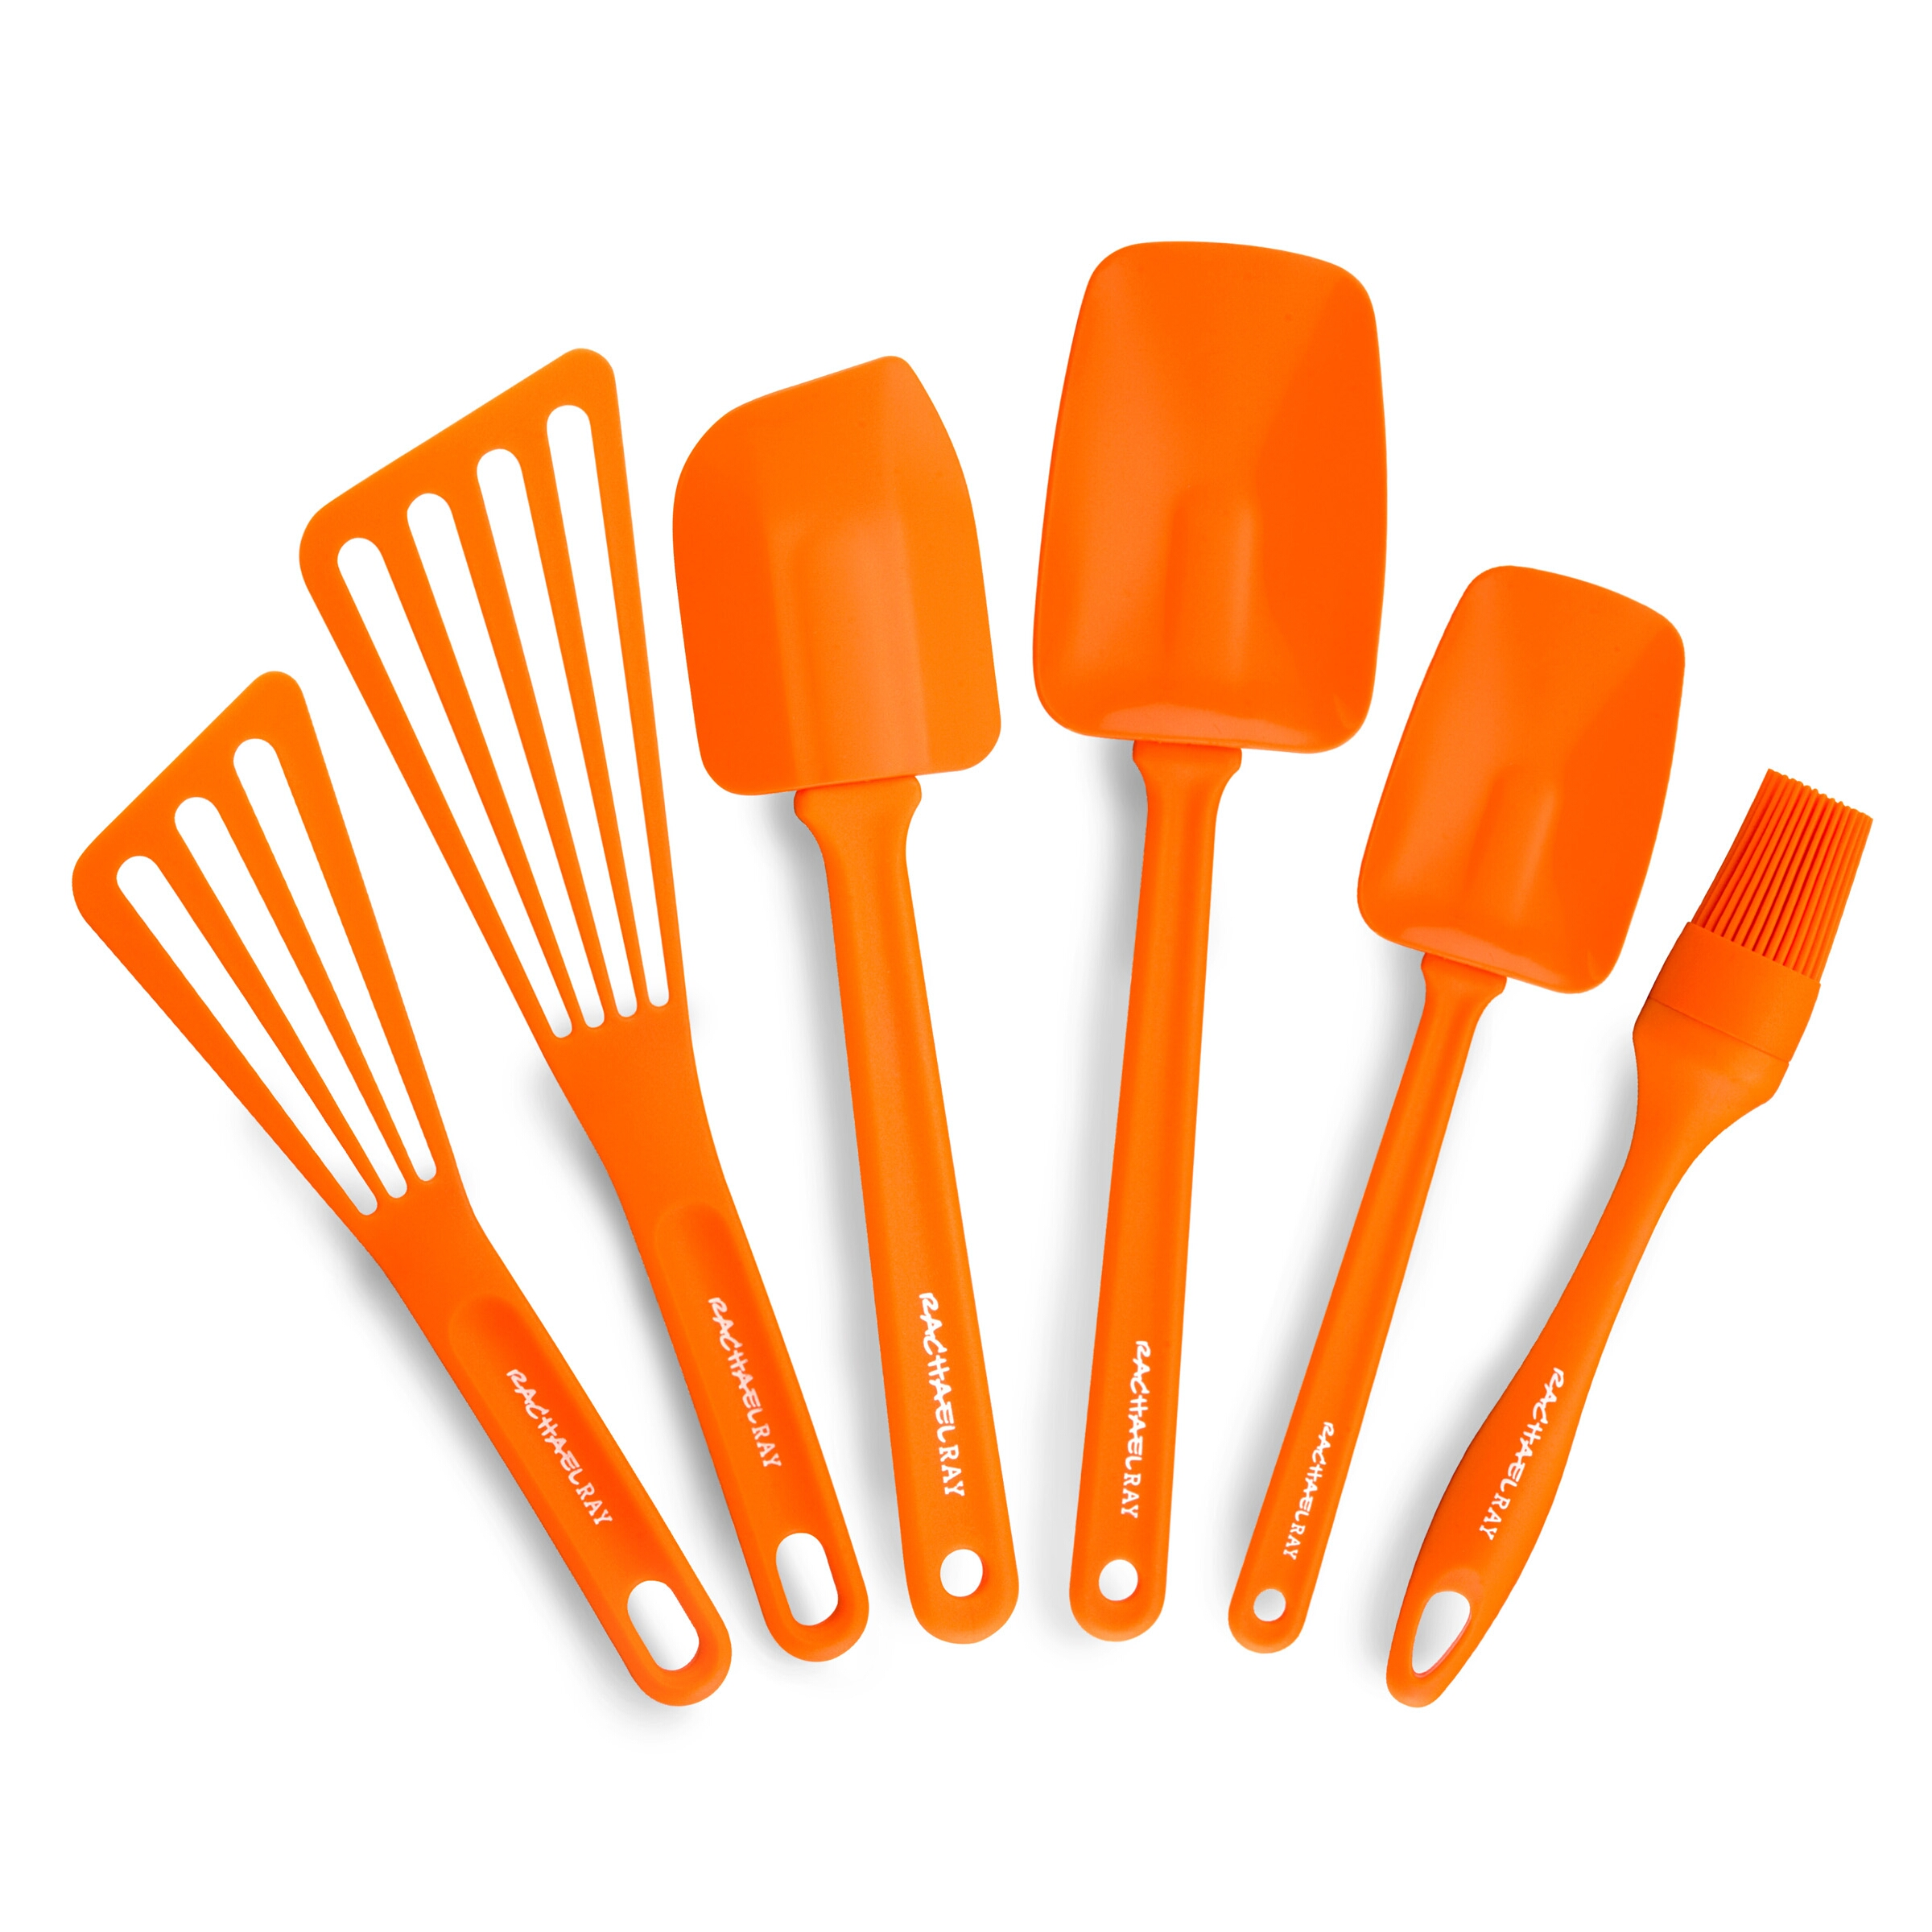 Rachael Ray 6-Piece Cooking Utensil Set Orange